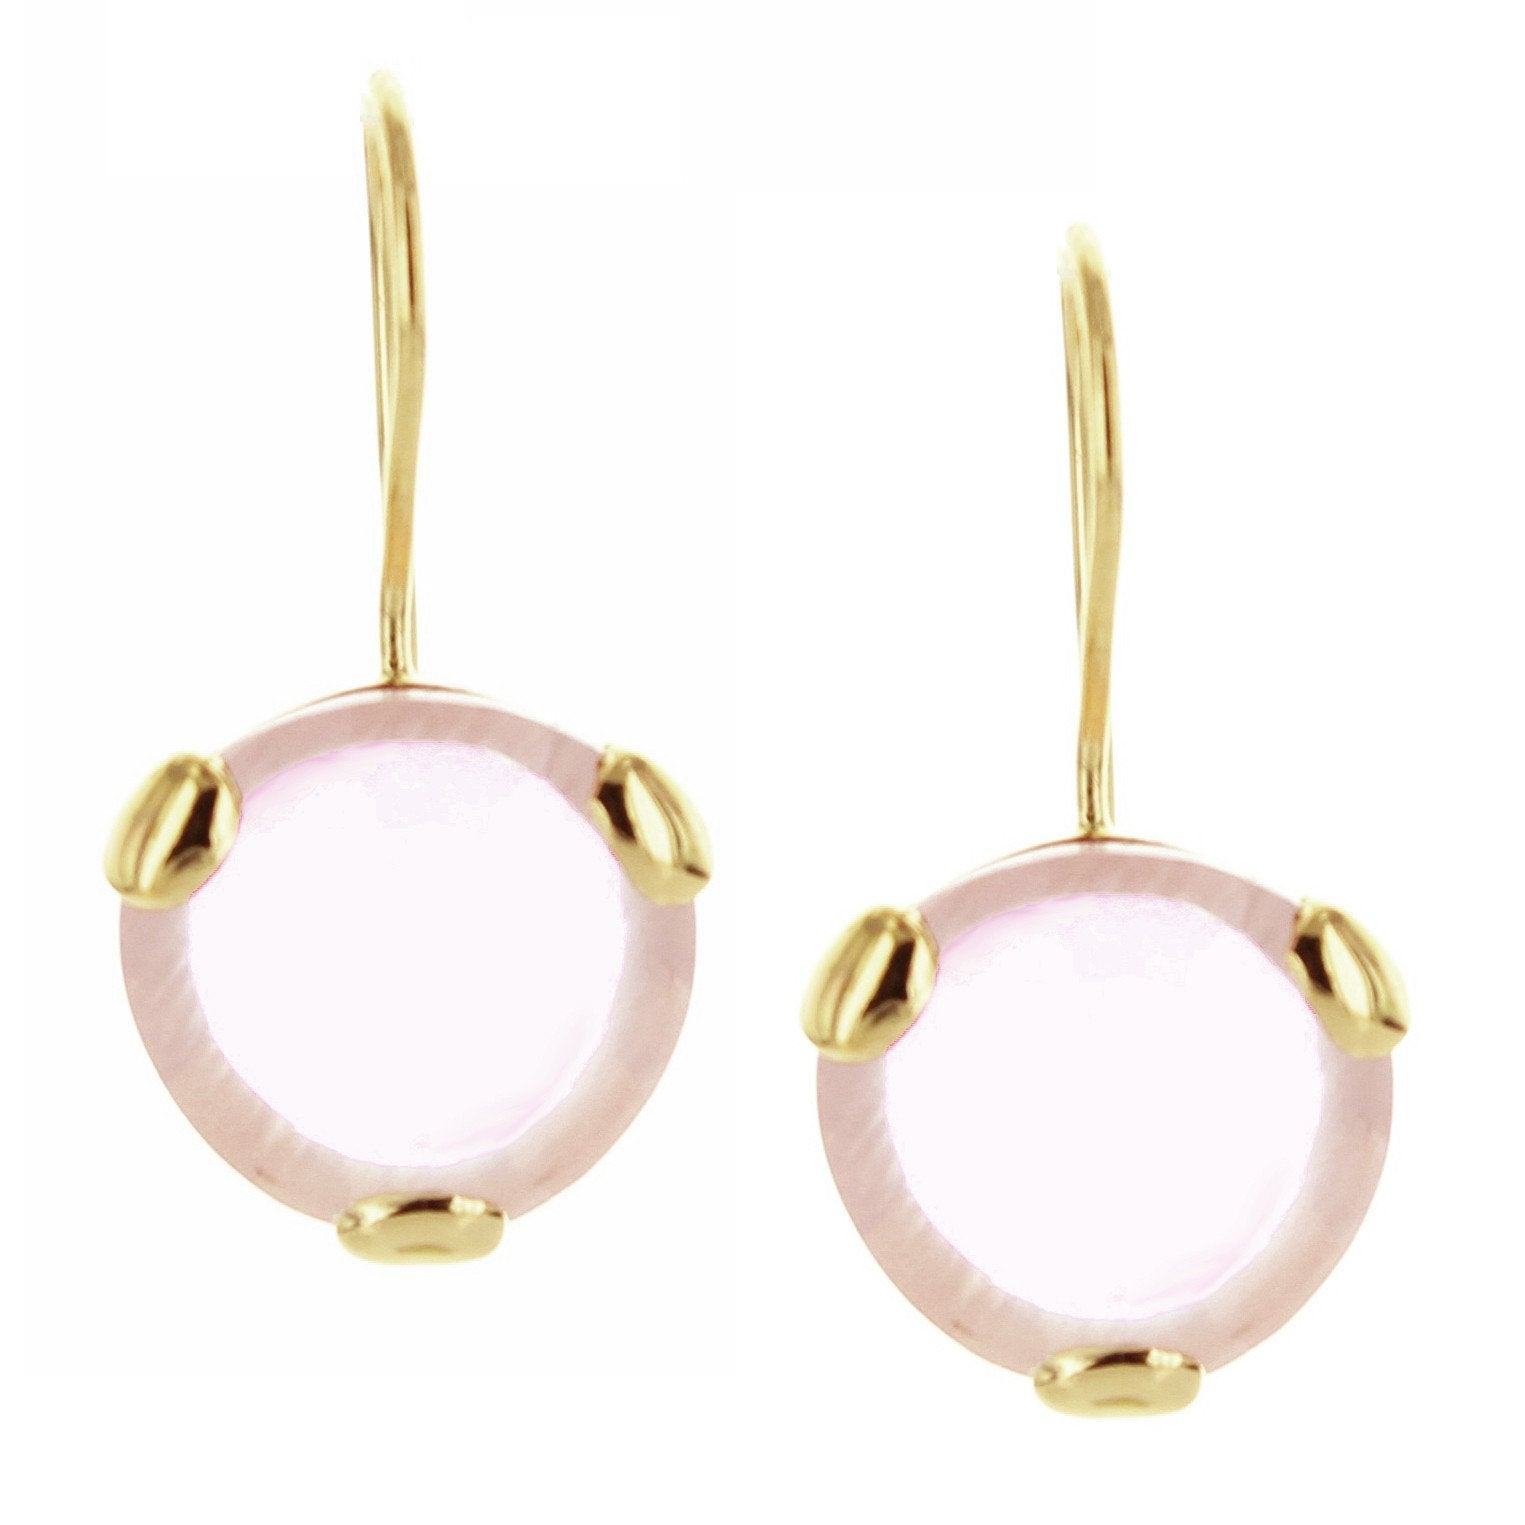 FEARLESS DROP EARRINGS - PINK QUARTZ & GOLD - SO PRETTY CARA COTTER